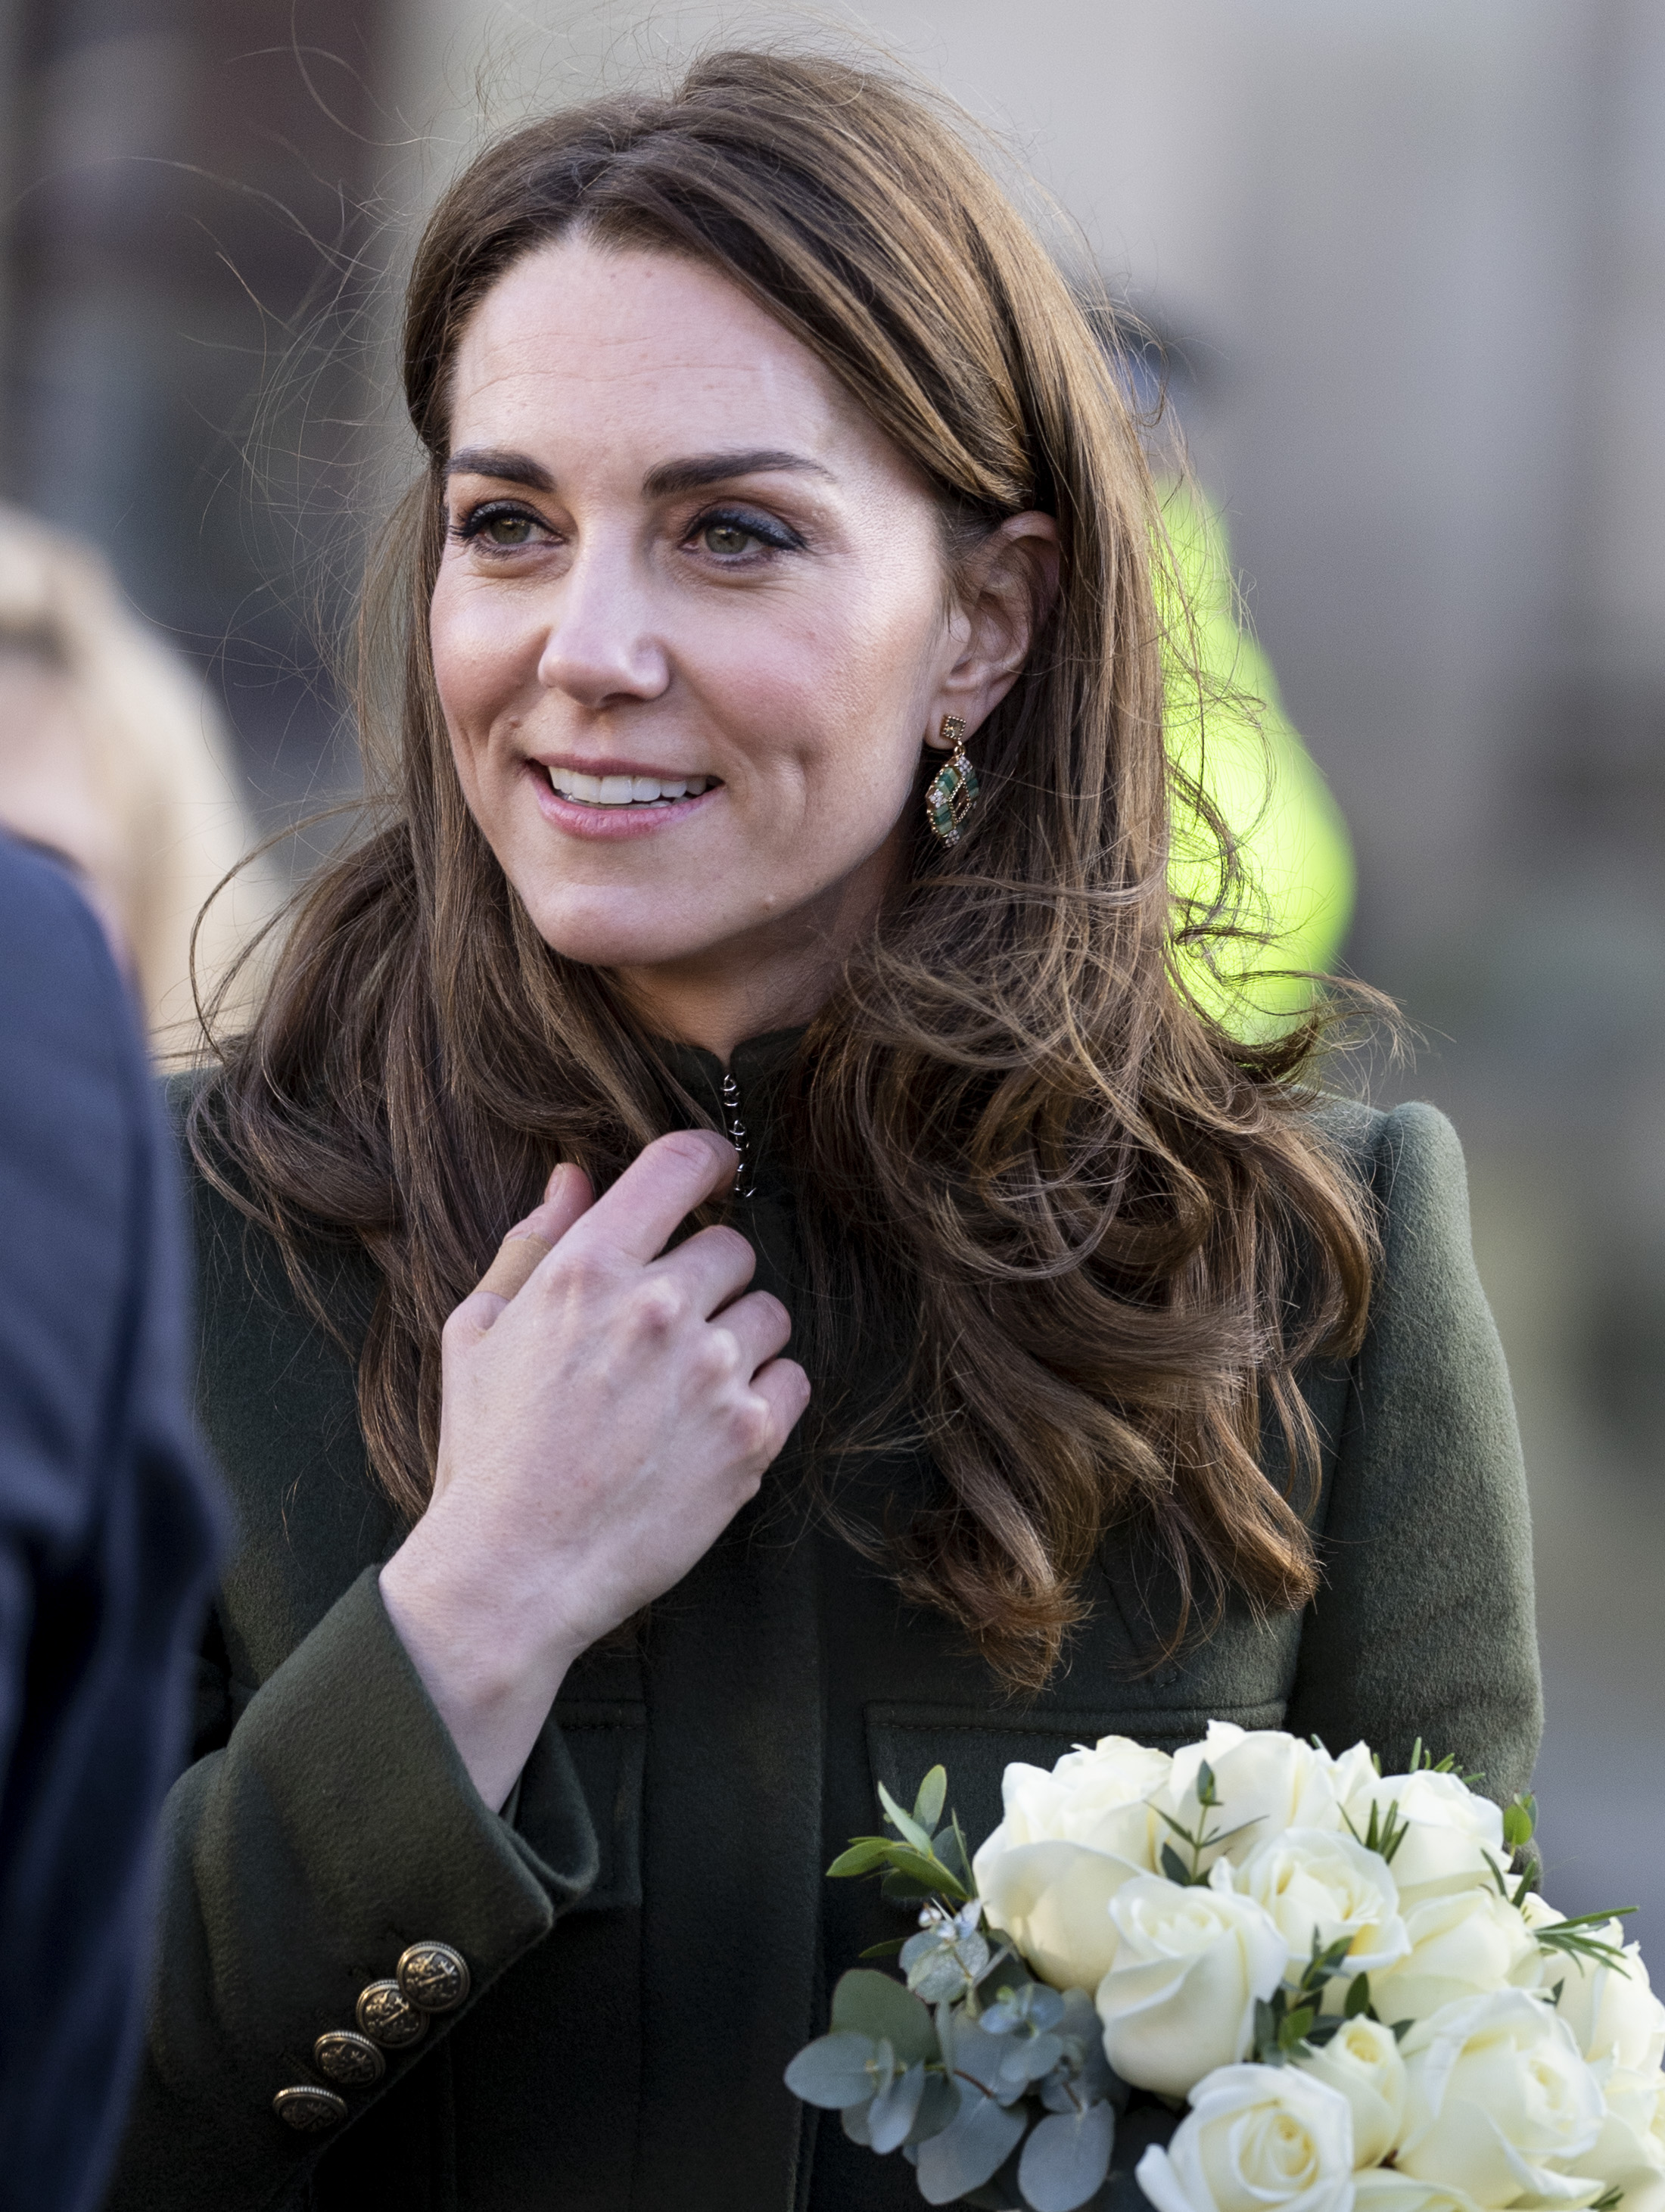 BRADFORD, ENGLAND - JANUARY 15: Catherine, Duchess of Cambridge visits City Hall in Bradfords Centenary Square where she met members of the public on a walkabout on January 15, 2020 in Bradford, United Kingdom. (Photo by Mark Cuthbert/UK Press via Getty Images)